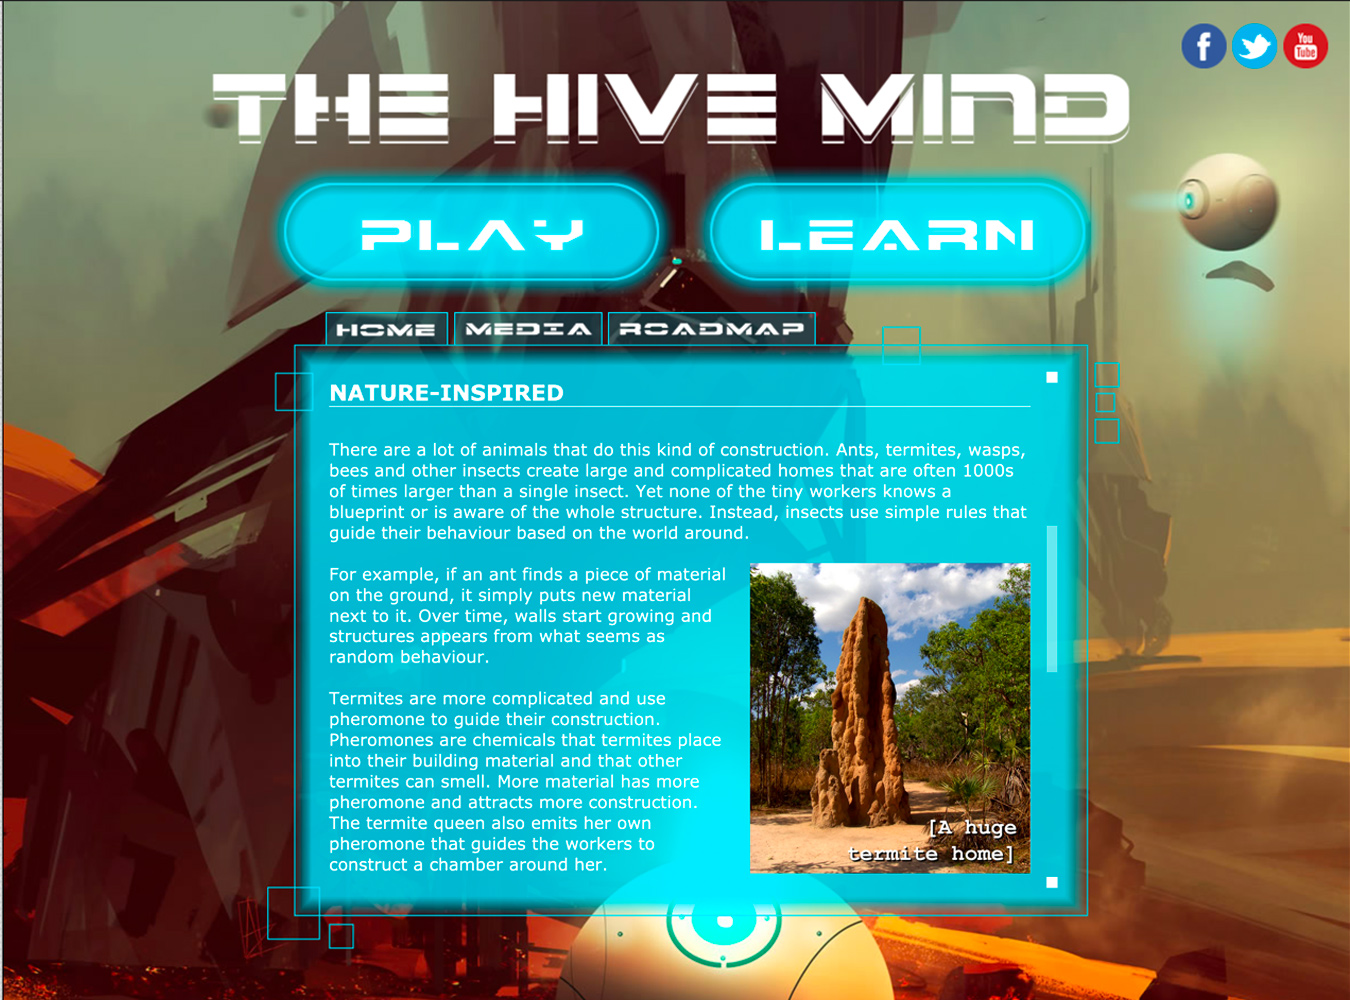 The Hive Mind website